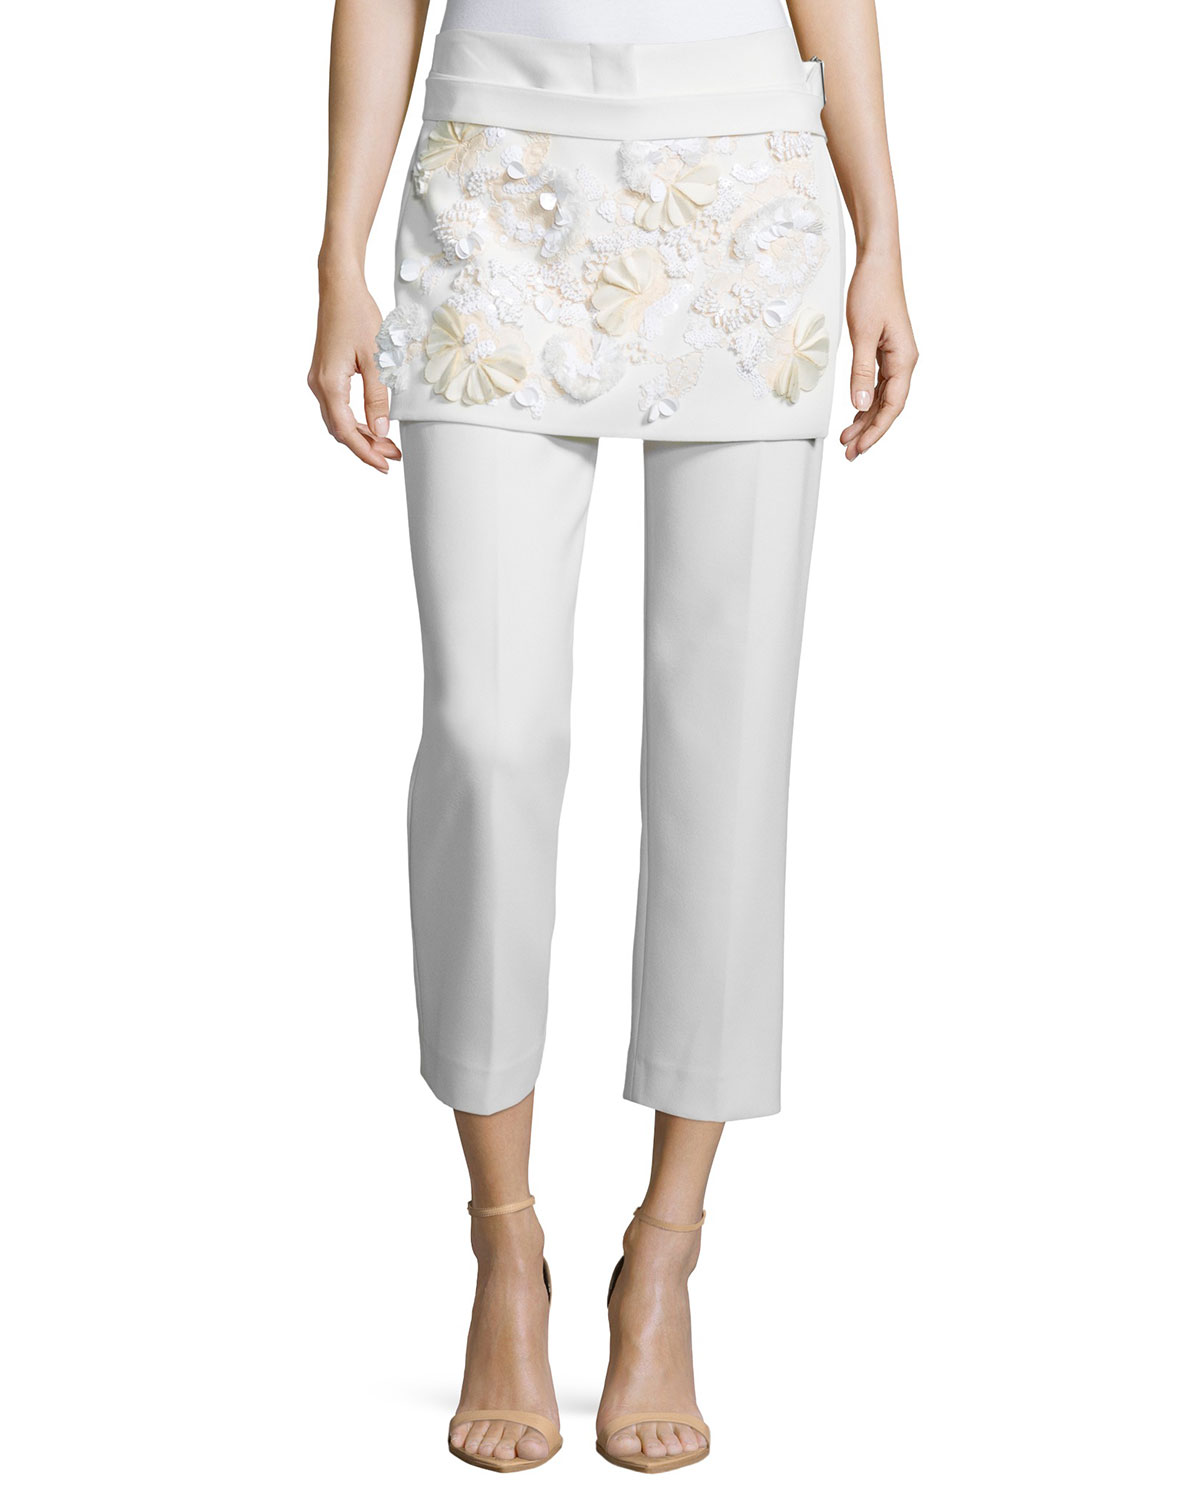 Cropped Apron Pants with Floral Embellishment, White - 3.1 Phillip Lim